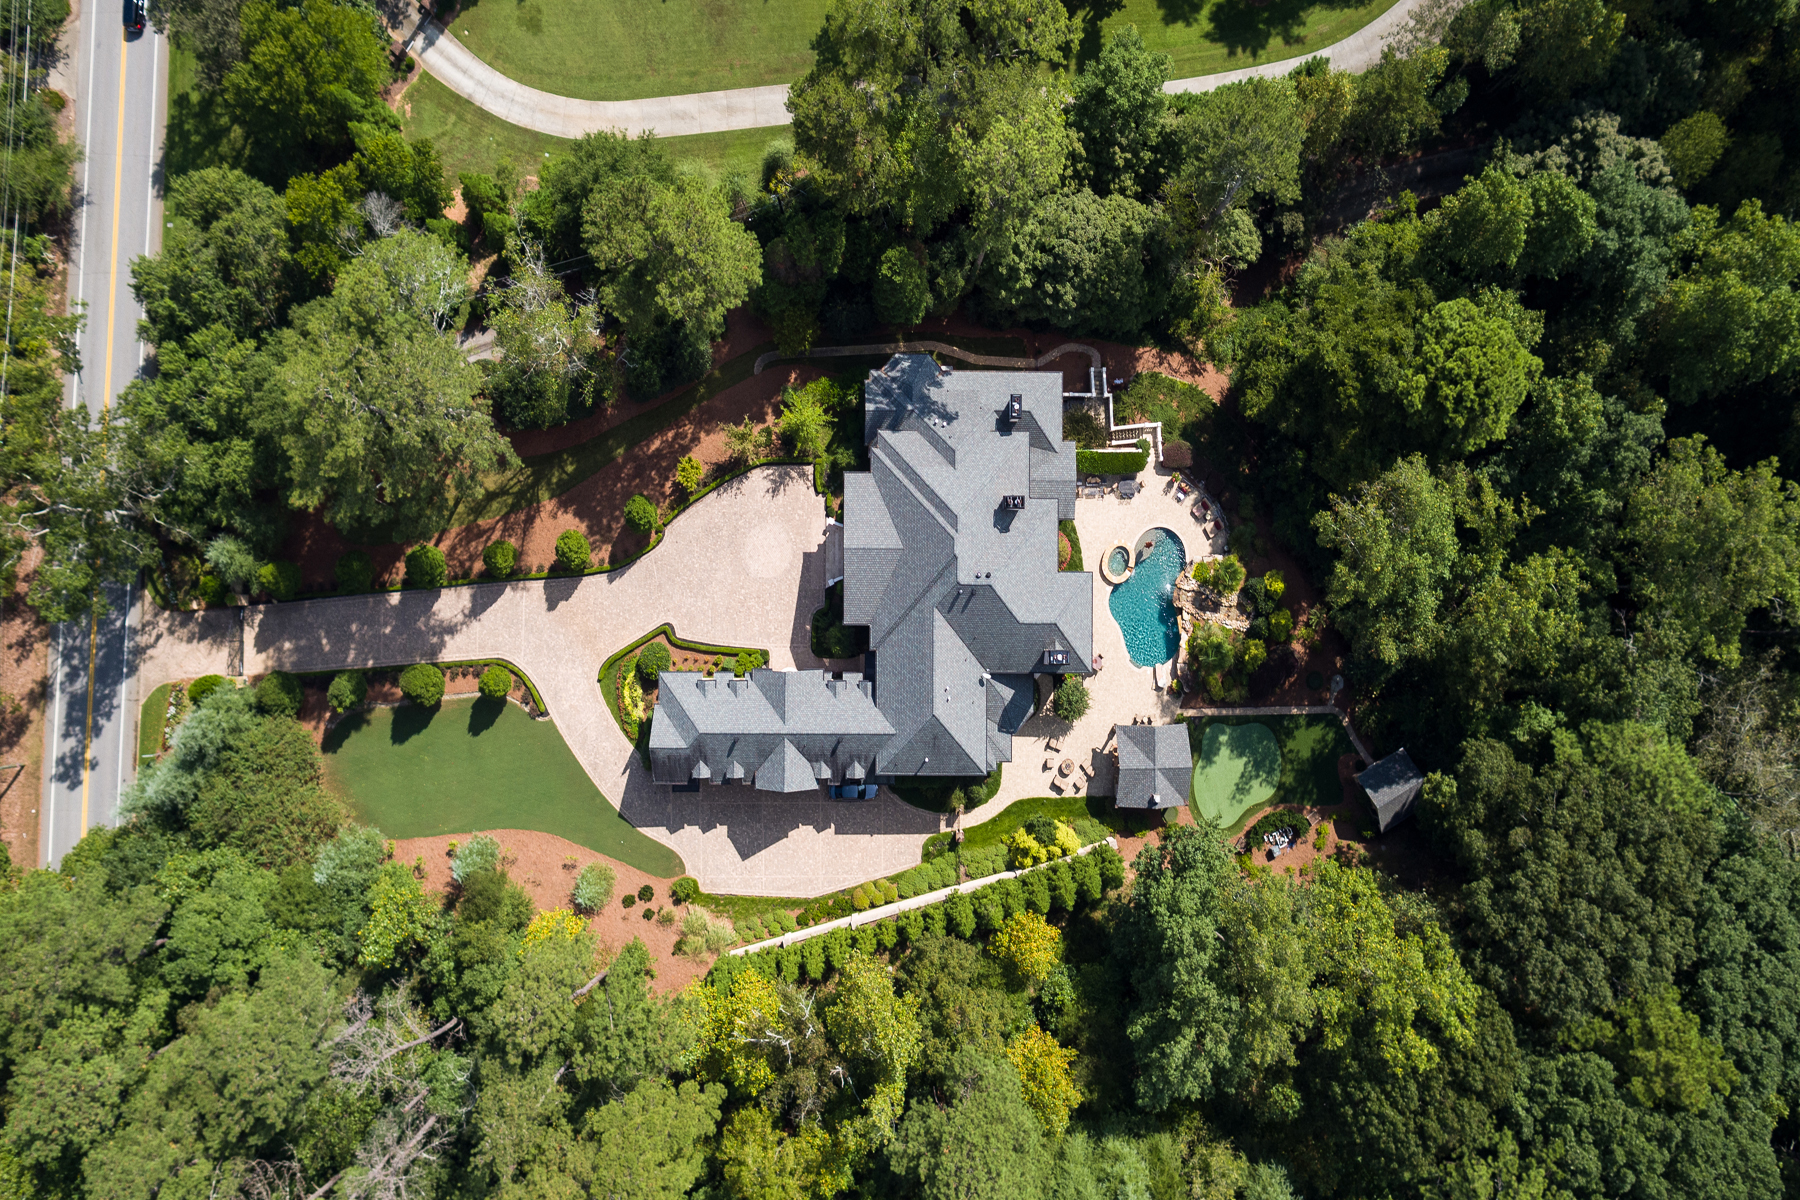 Single Family Homes för Försäljning vid Luxurious, Sophisticated, Elegant Gated Estate On 2.5+/- Acres 4870 Northside Drive, Atlanta, Georgien 30327 Förenta staterna